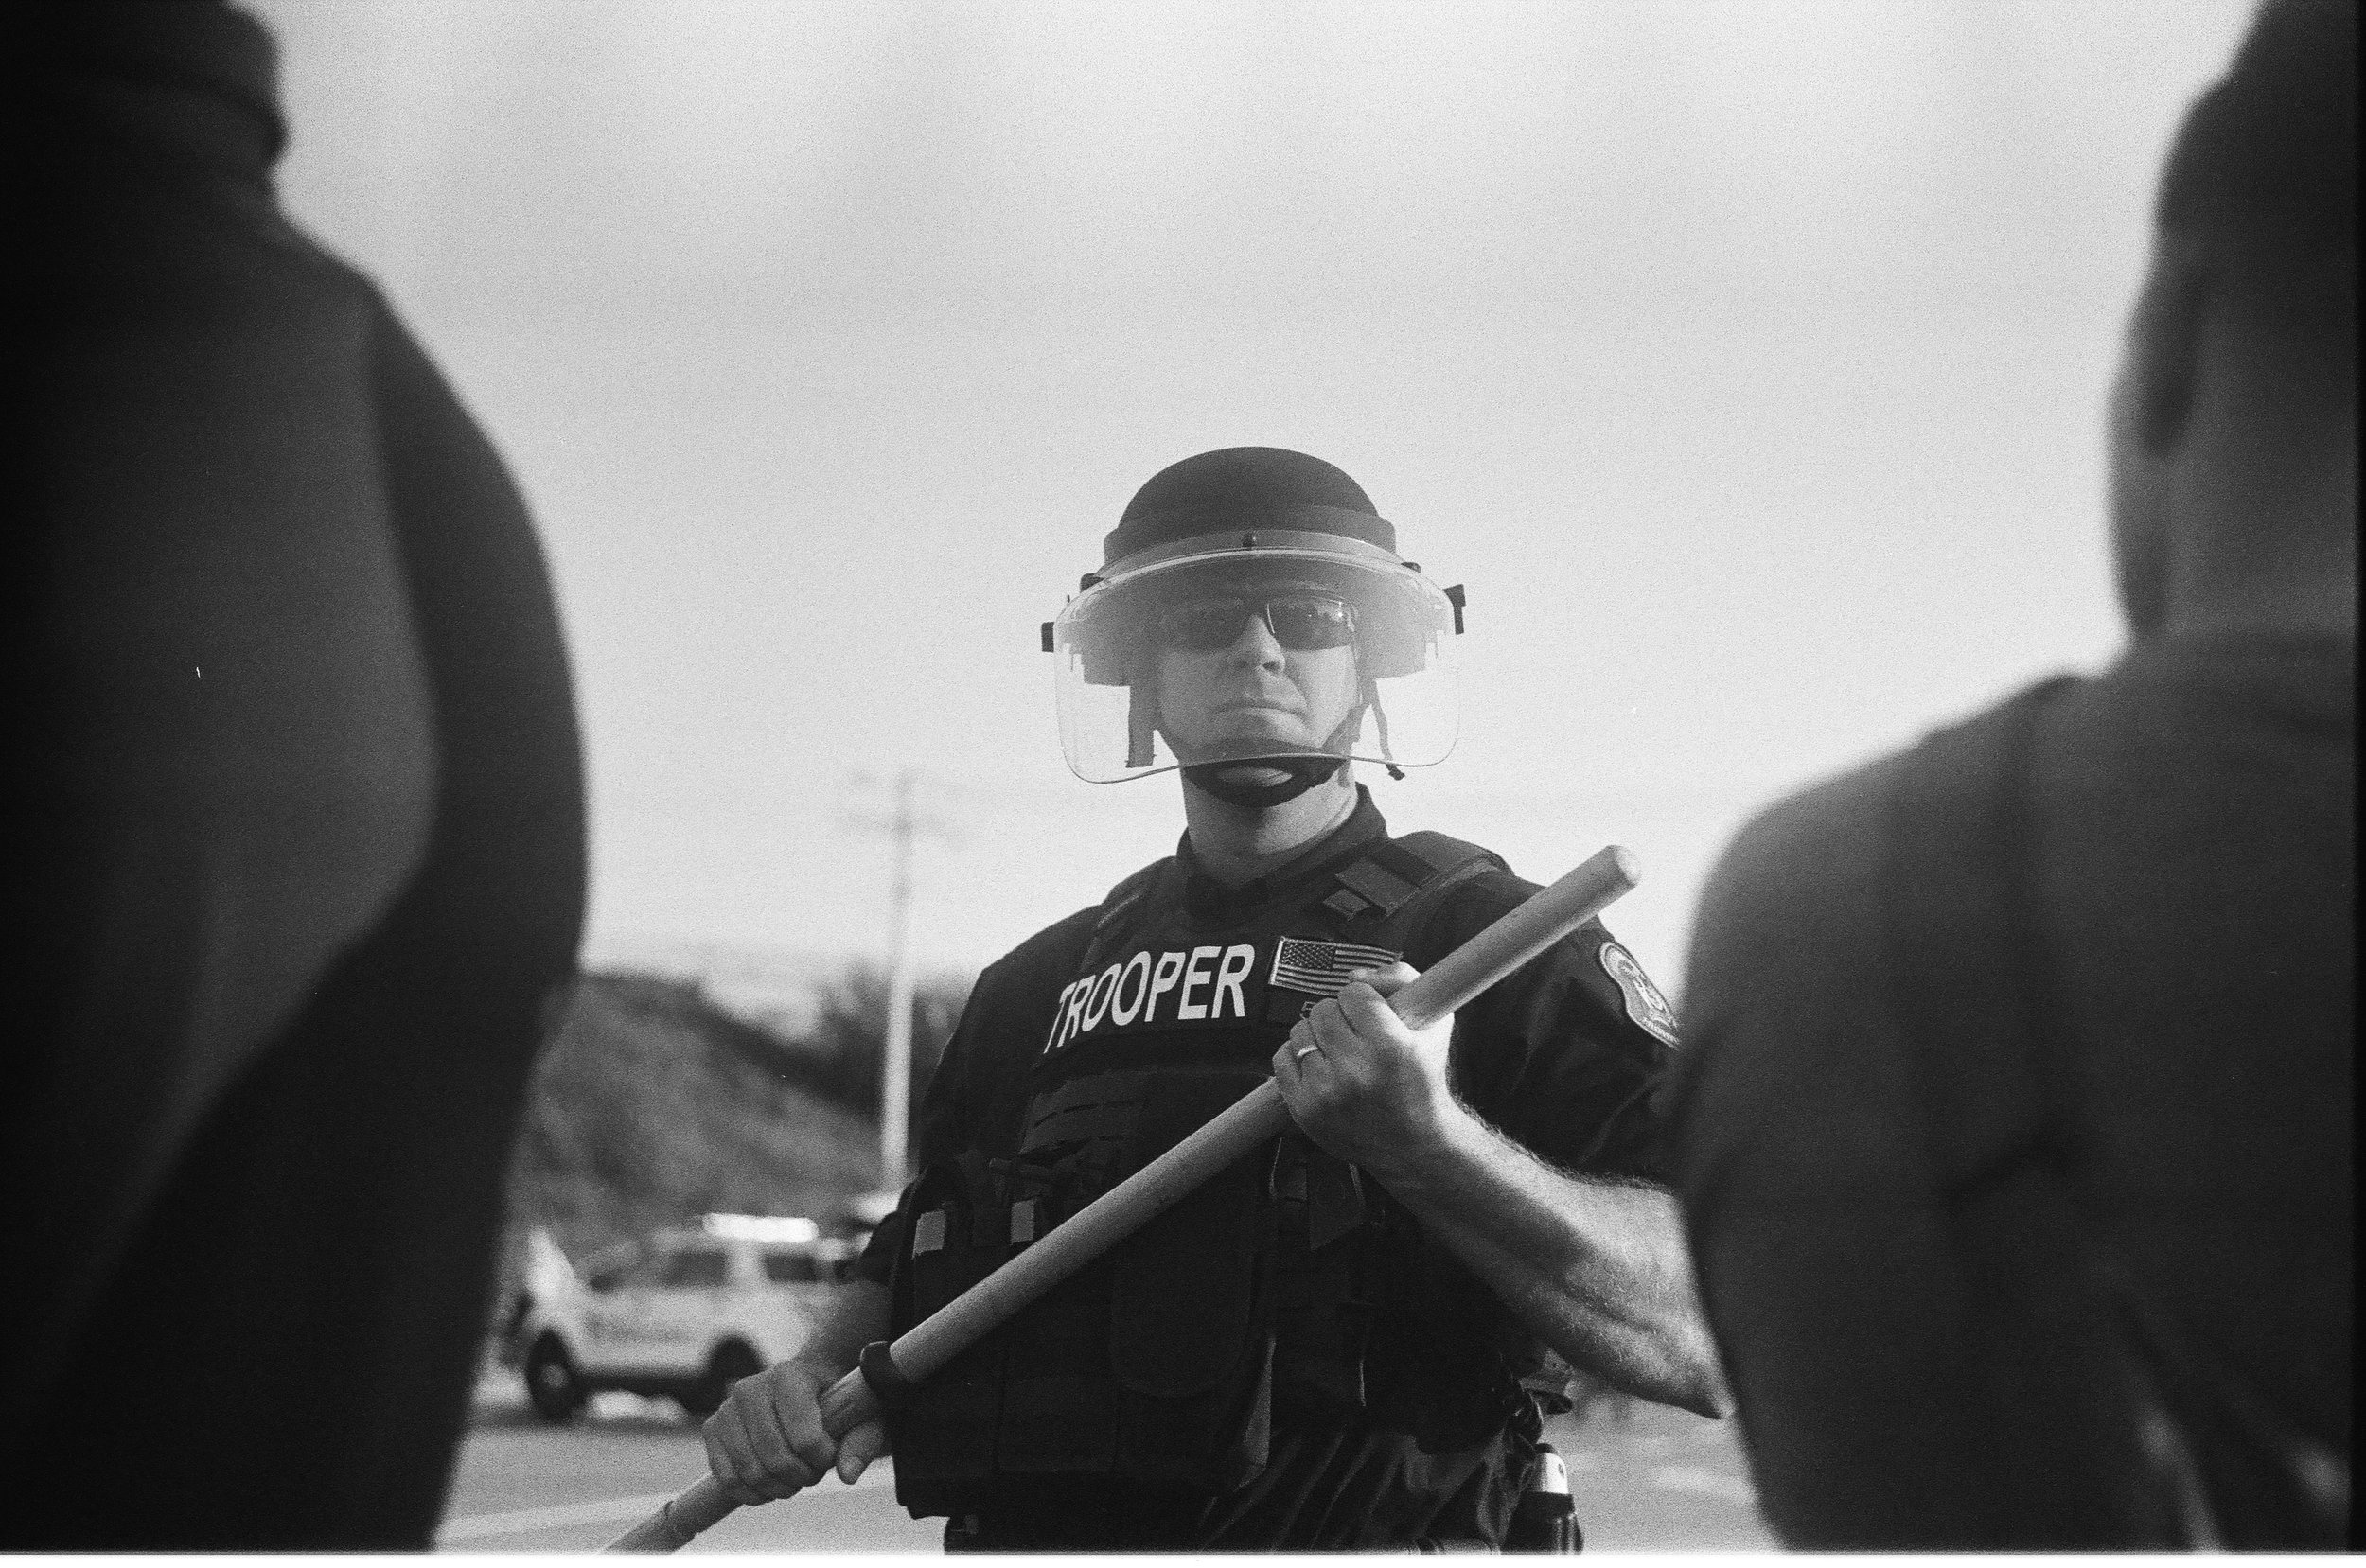 A police officer in protective gear holds a club in St. Louis.